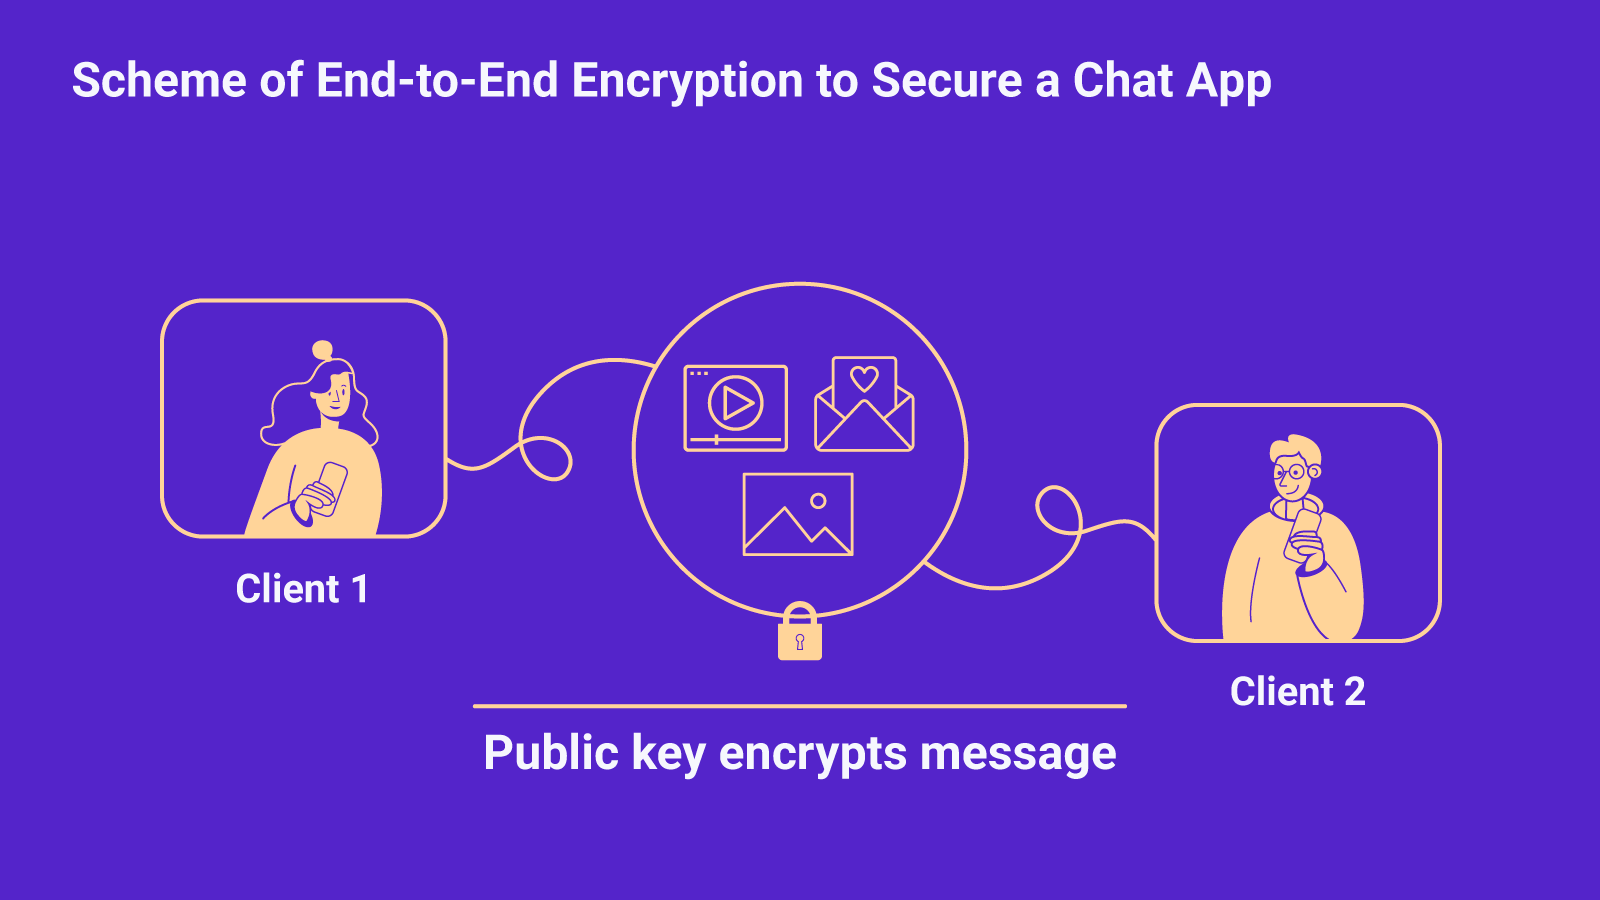 Scheme of End-to-End Encryption to Secure a Chat App